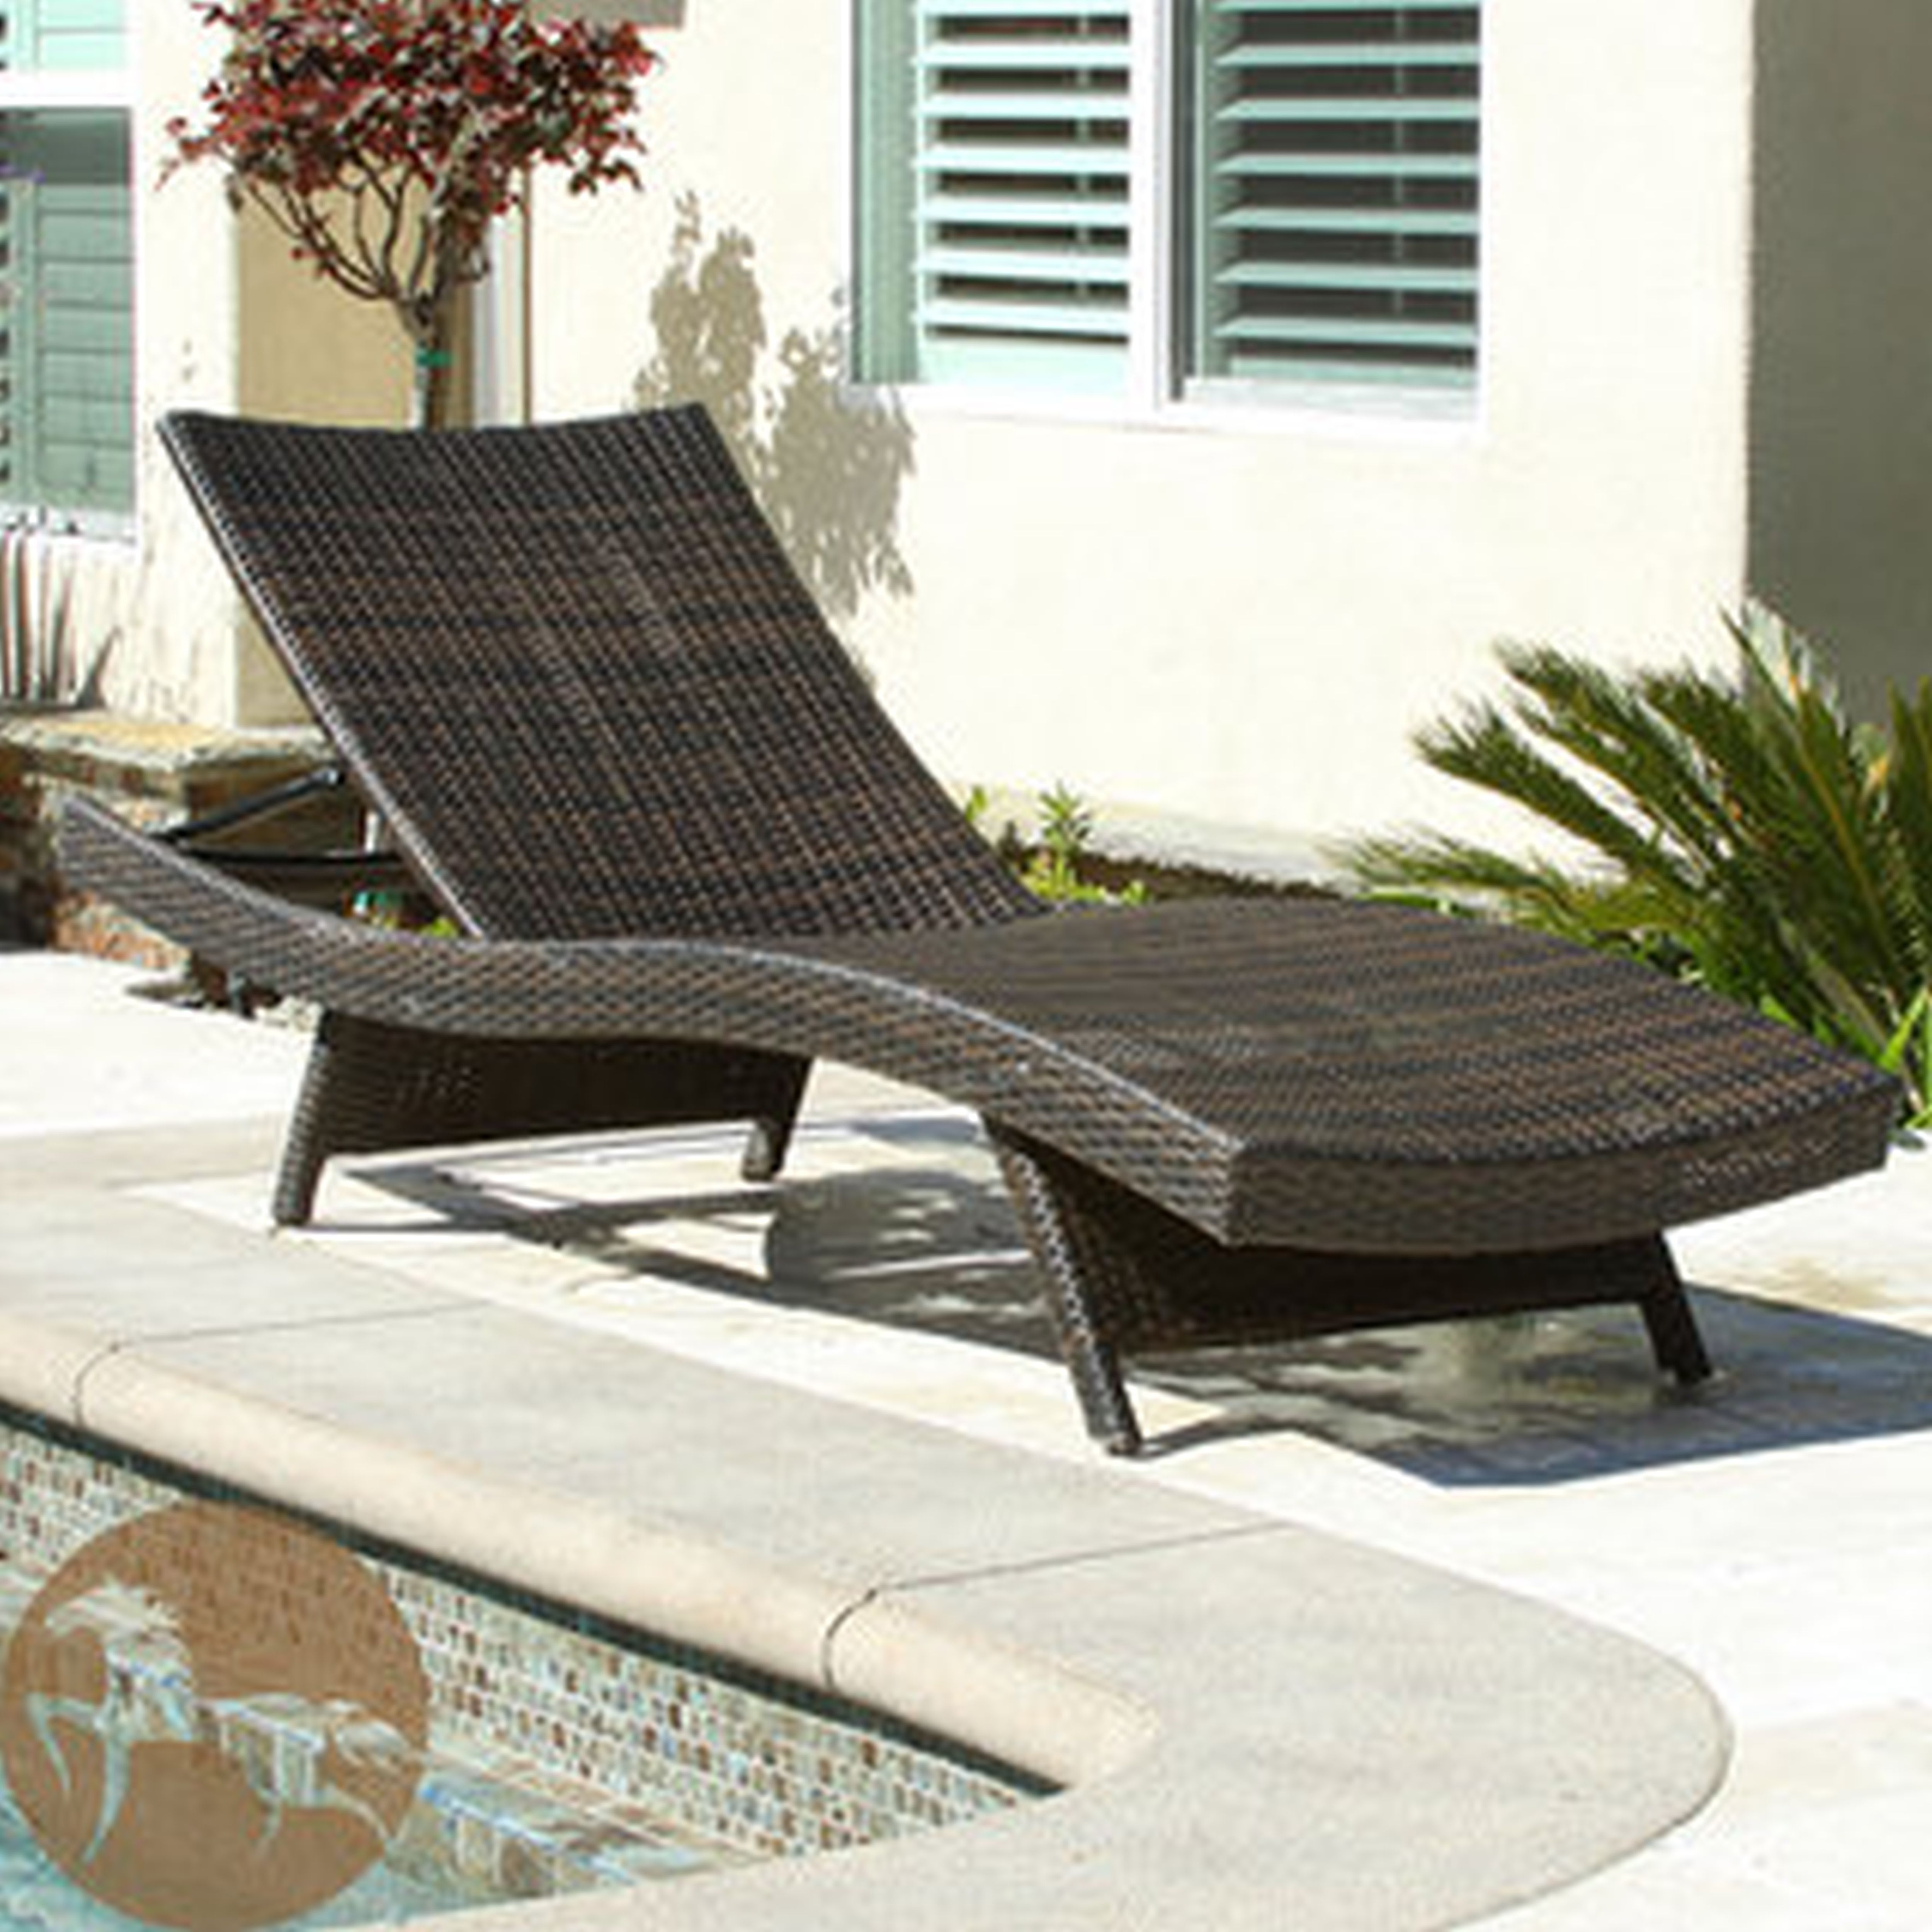 Walmart Chaise Lounges Pertaining To Popular Outdoor : Chaise Lounge Sofa Lowes Patio Furniture Clearance (View 12 of 15)